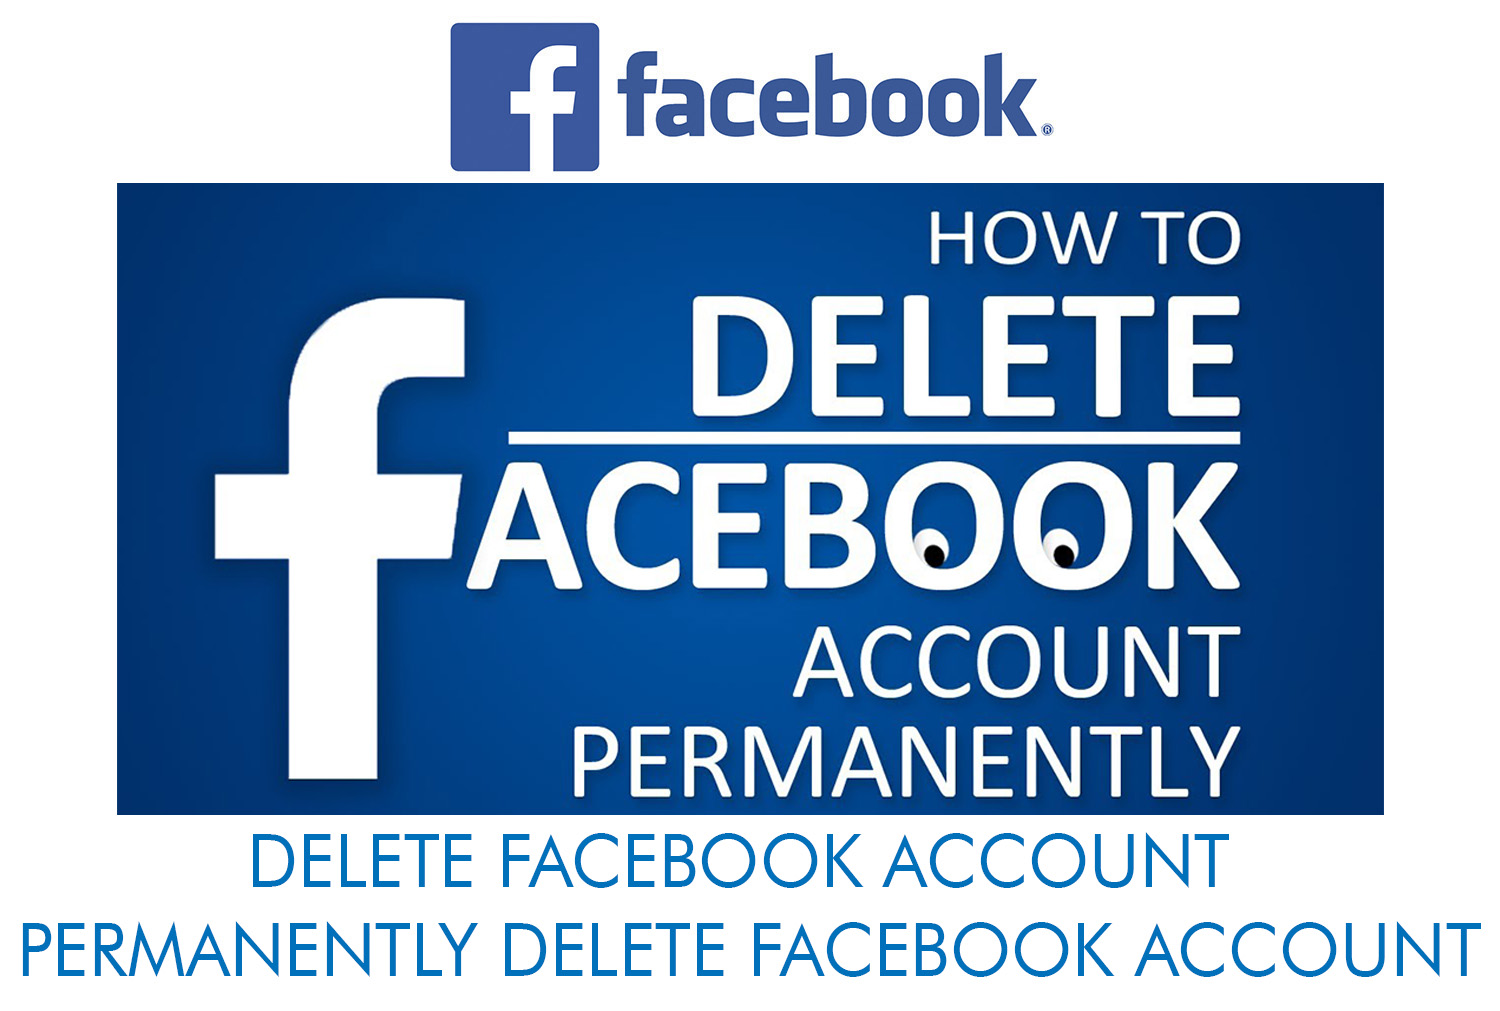 Delete Facebook Account - Permanently Delete Facebook Account